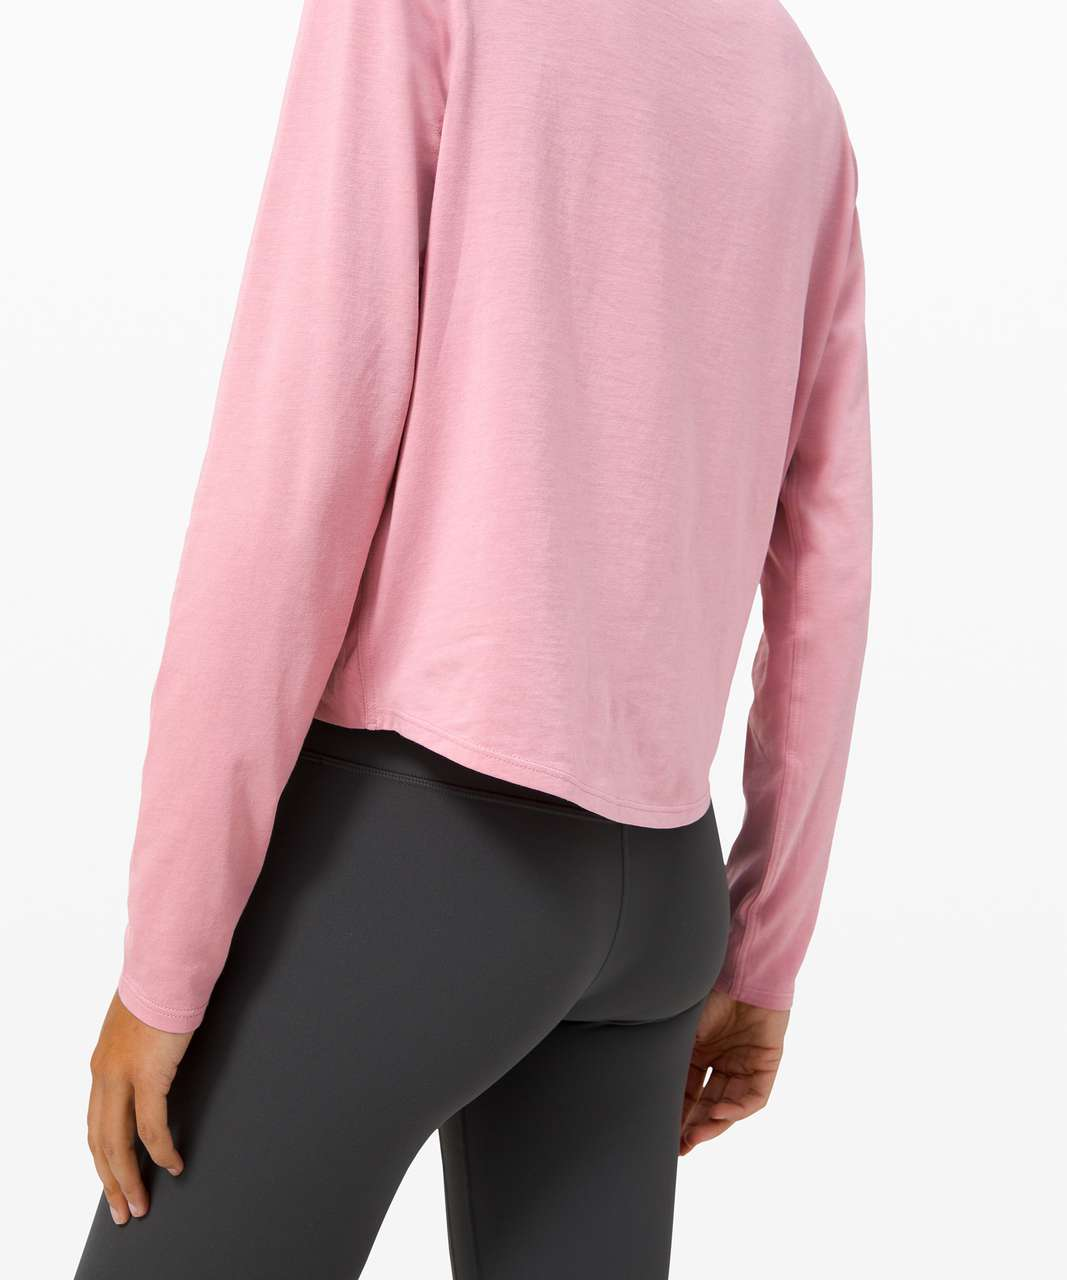 Lululemon Pleats and Thank you Long Sleeve - Pink Taupe